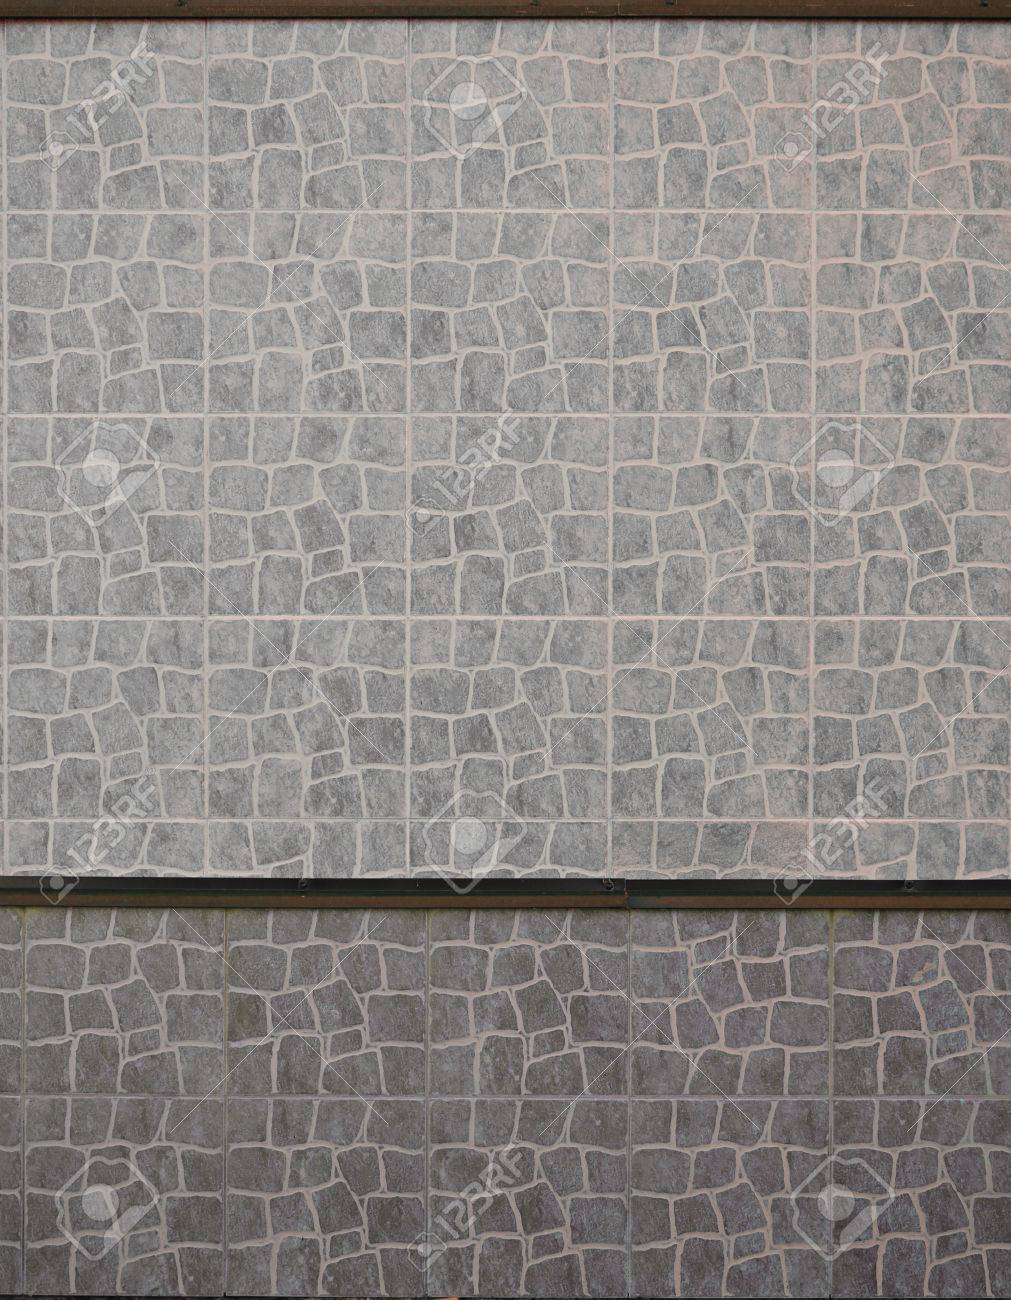 Russian Ceramic Wall Tiles Texture Modern Exterior Marble Floors Stock Photo